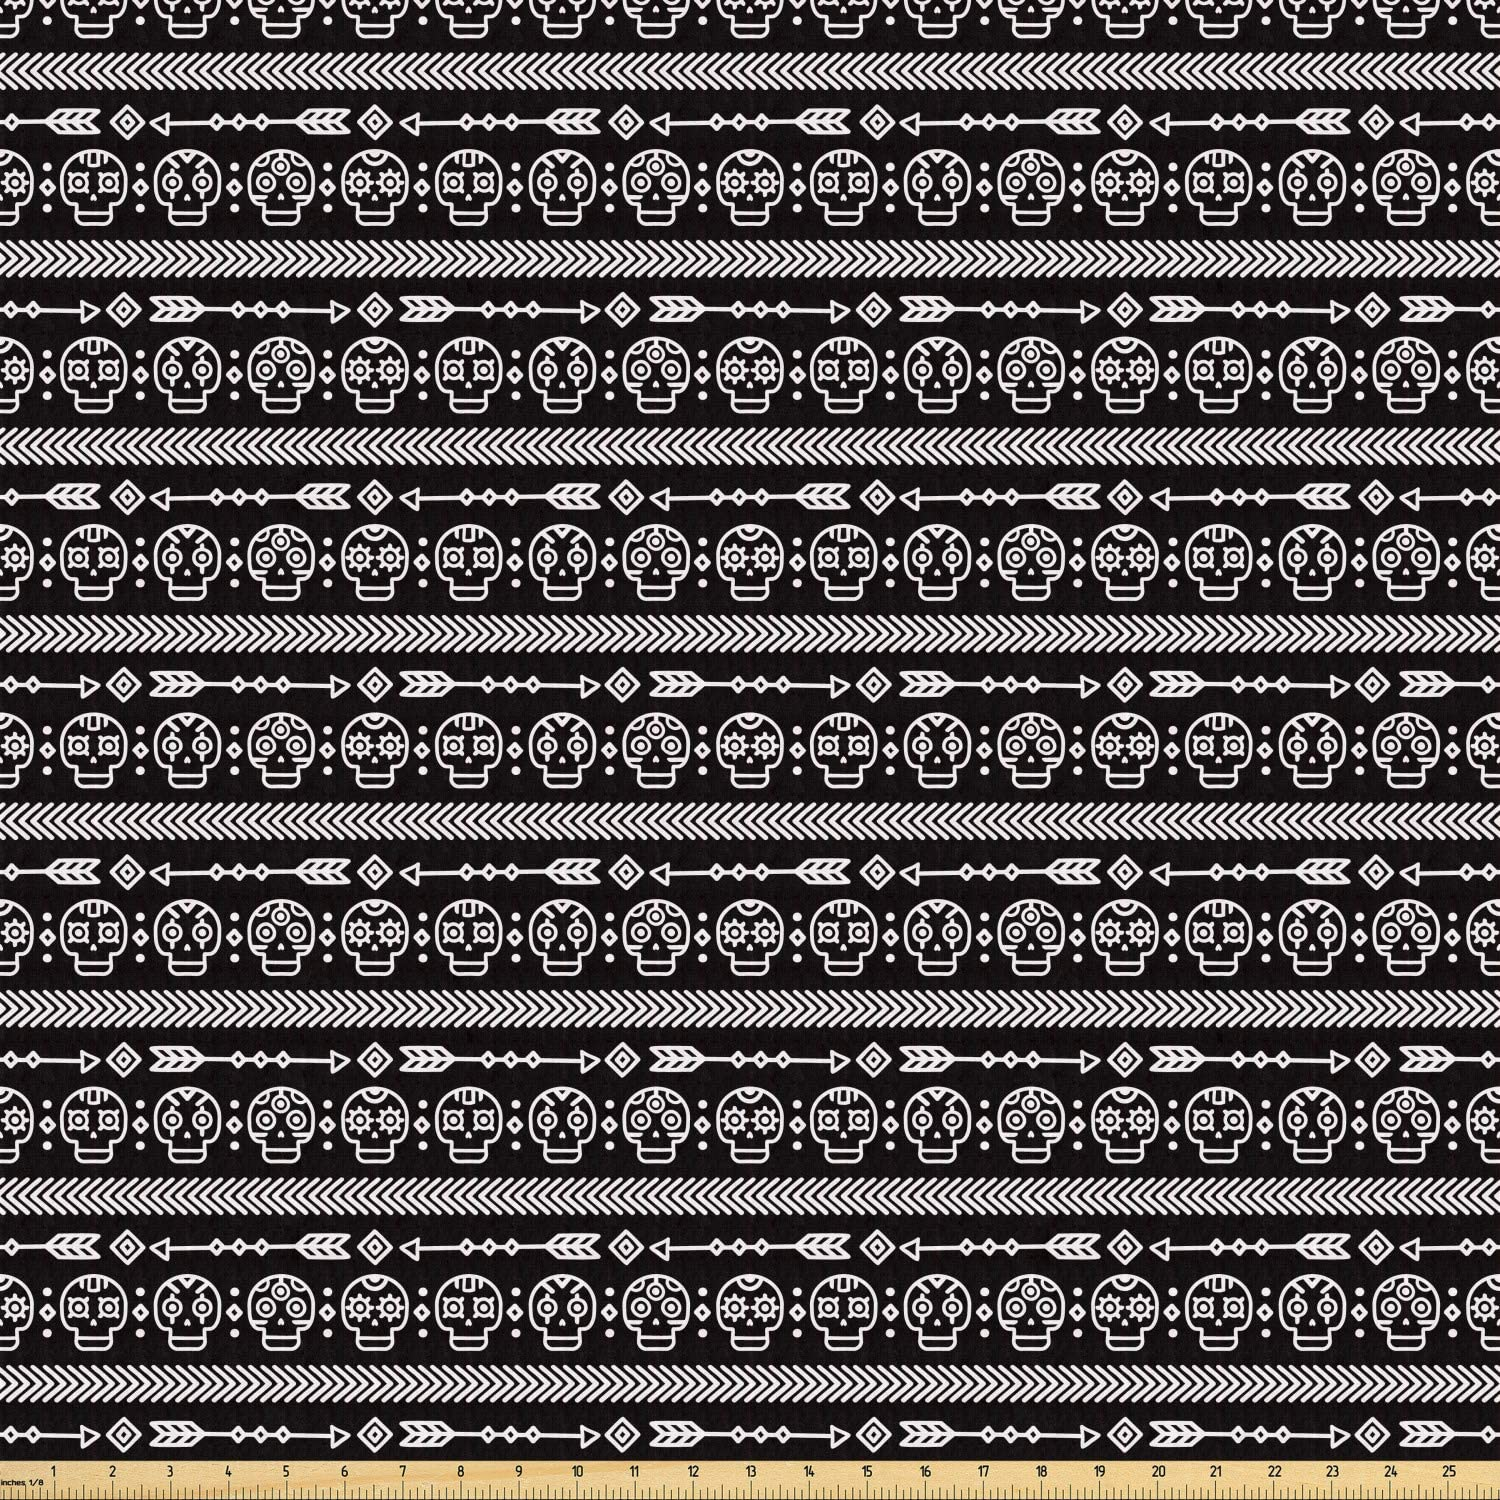 Lunarable Day of The Dead Fabric by The Yard, Hand Drawn Style Line Art Native Doodle Skulls Arrows Mexican Tradition, Stretch Knit Fabric for Clothing Sewing and Arts Crafts, 1 Yard, White Black